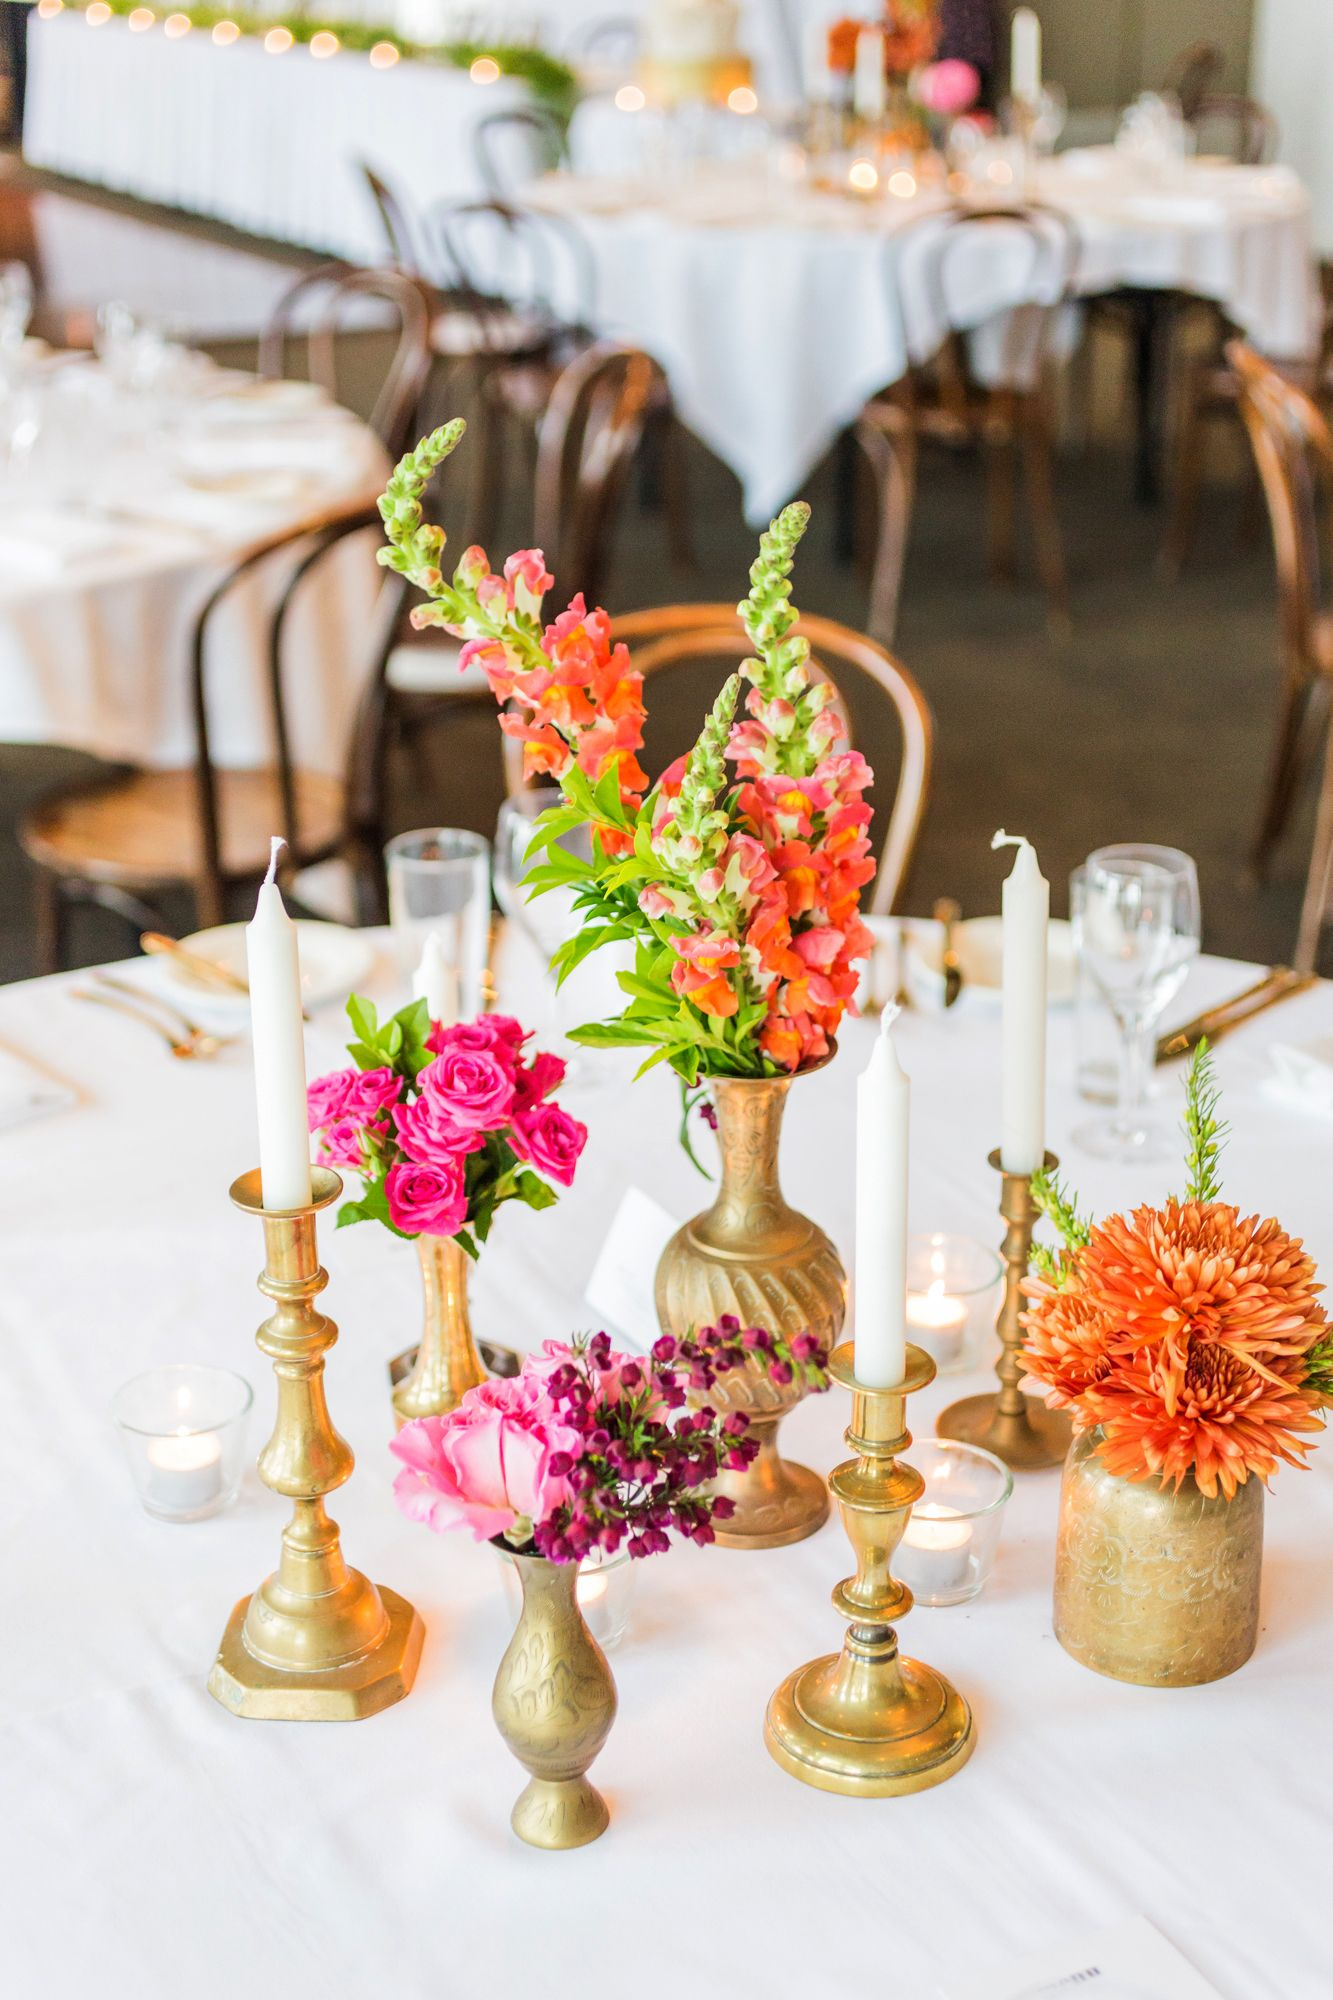 Victoria Park Is A Stunning Brisbane Wedding Venue All Reception Rooms Feature Private Outdoor Terraces City Views And Free Parking